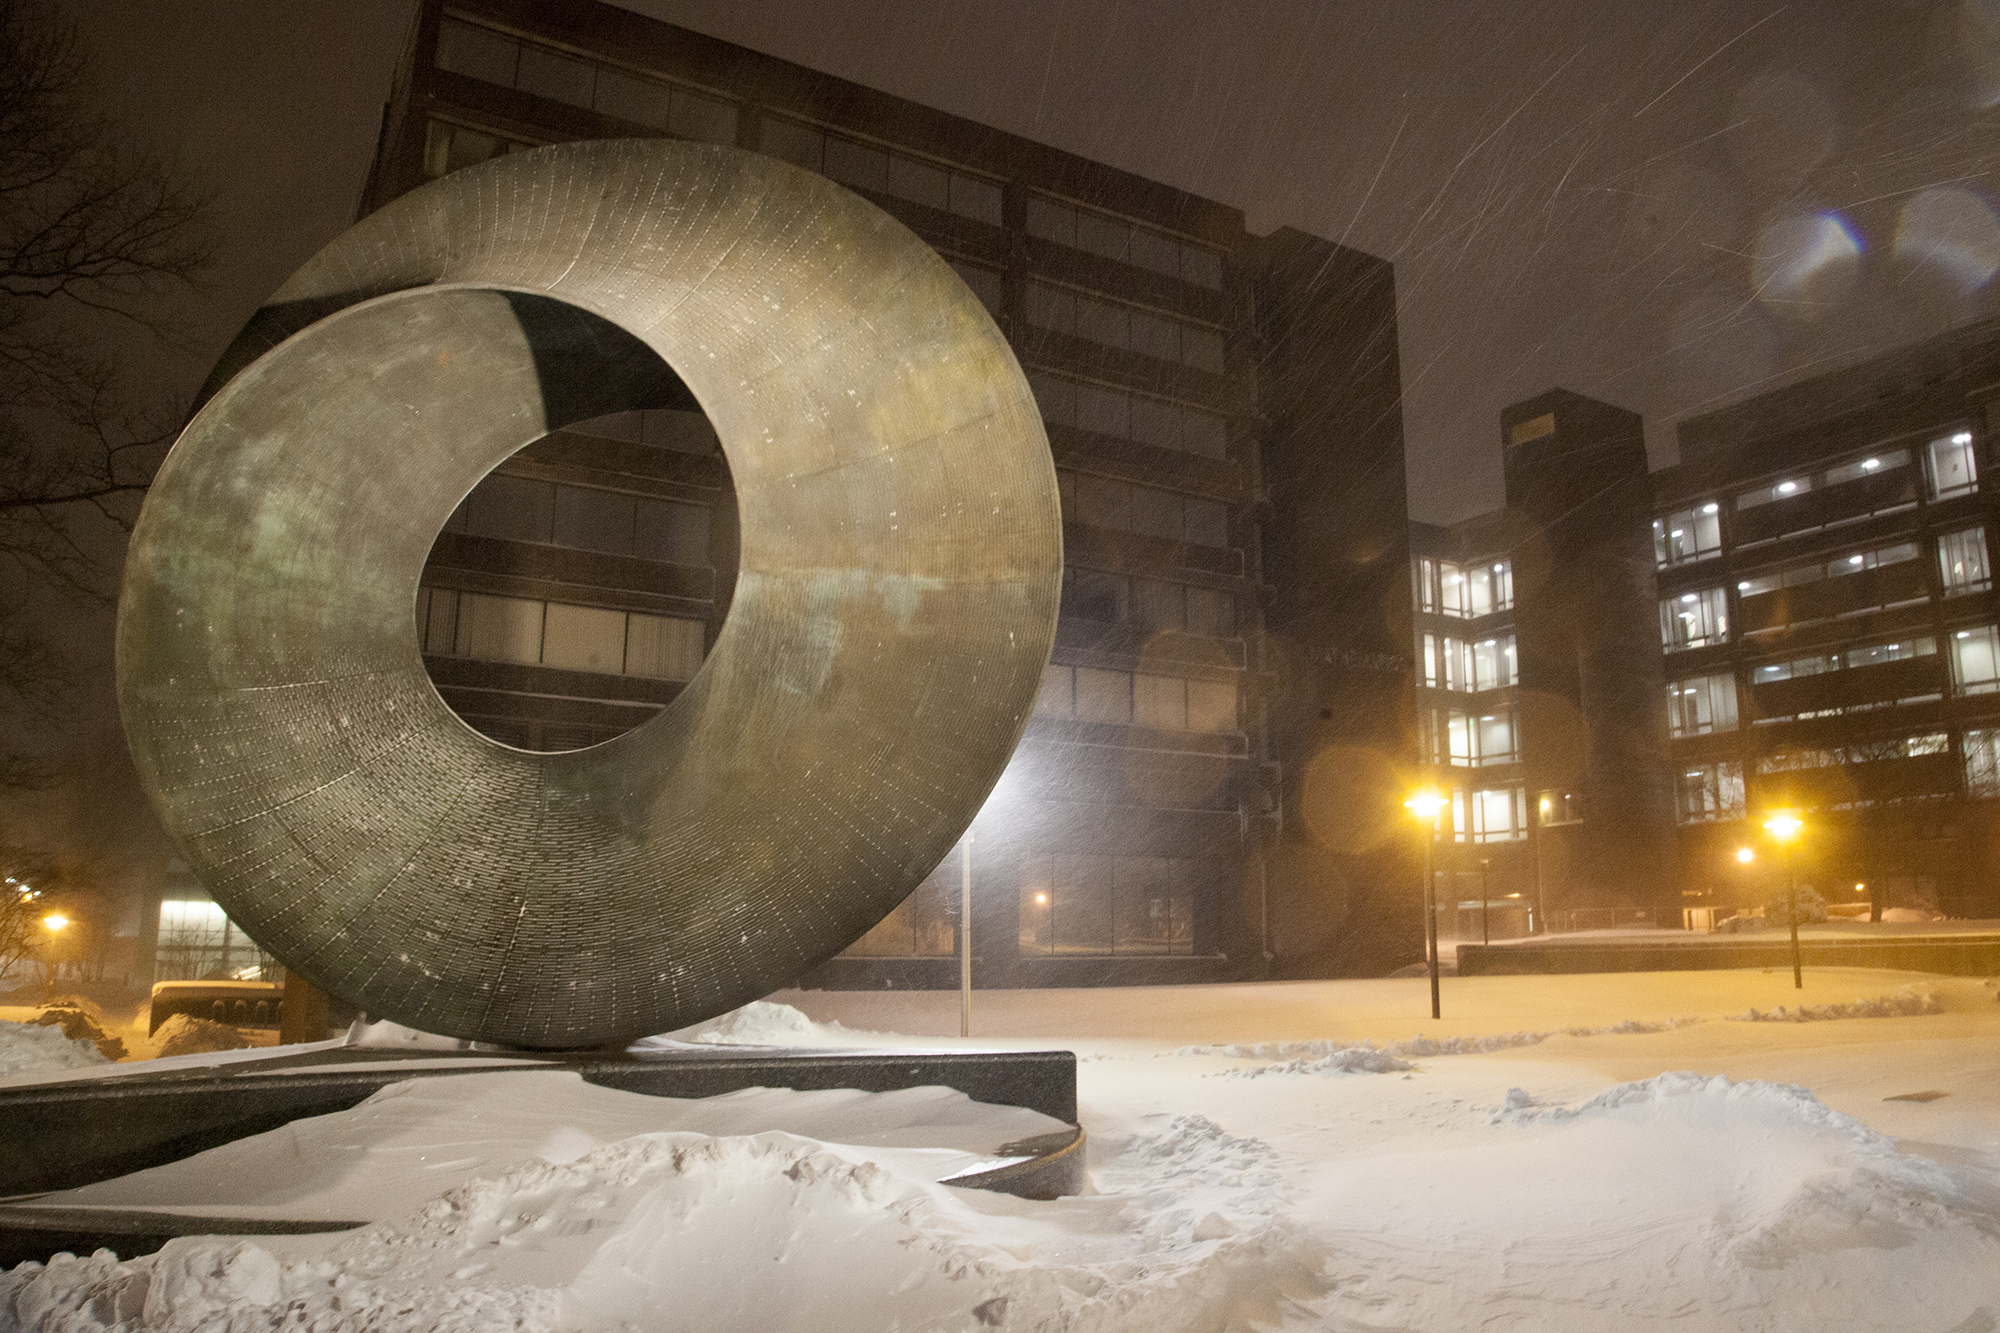 The Umbilic Torus at Stony Brook University during Winter Storm Jonas on Saturday, Jan. 23. CHRISTOPHER CAMERON/THE STATESMAN